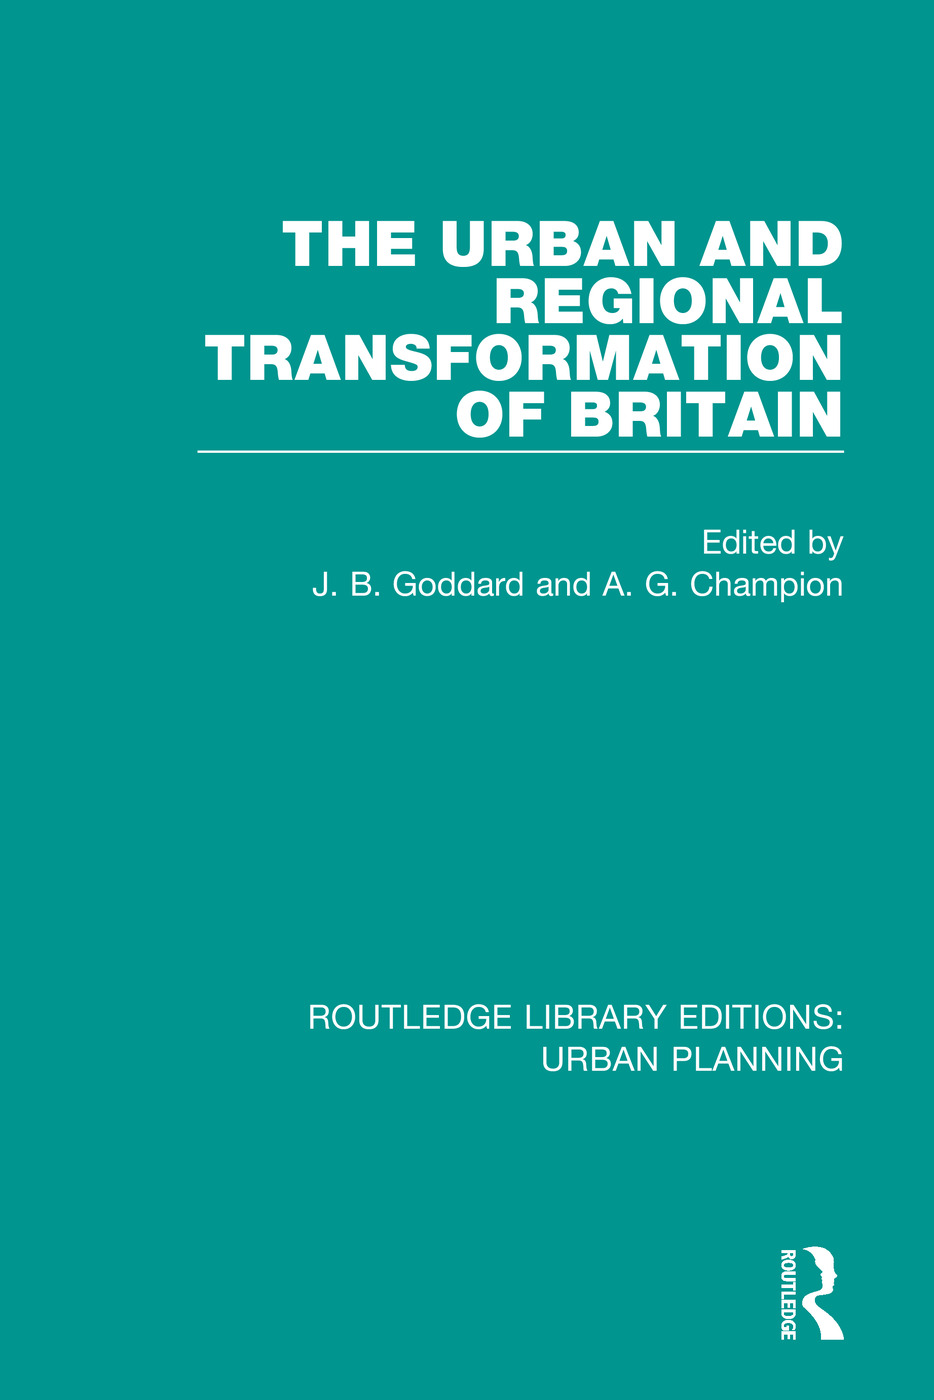 The Urban and Regional Transformation of Britain